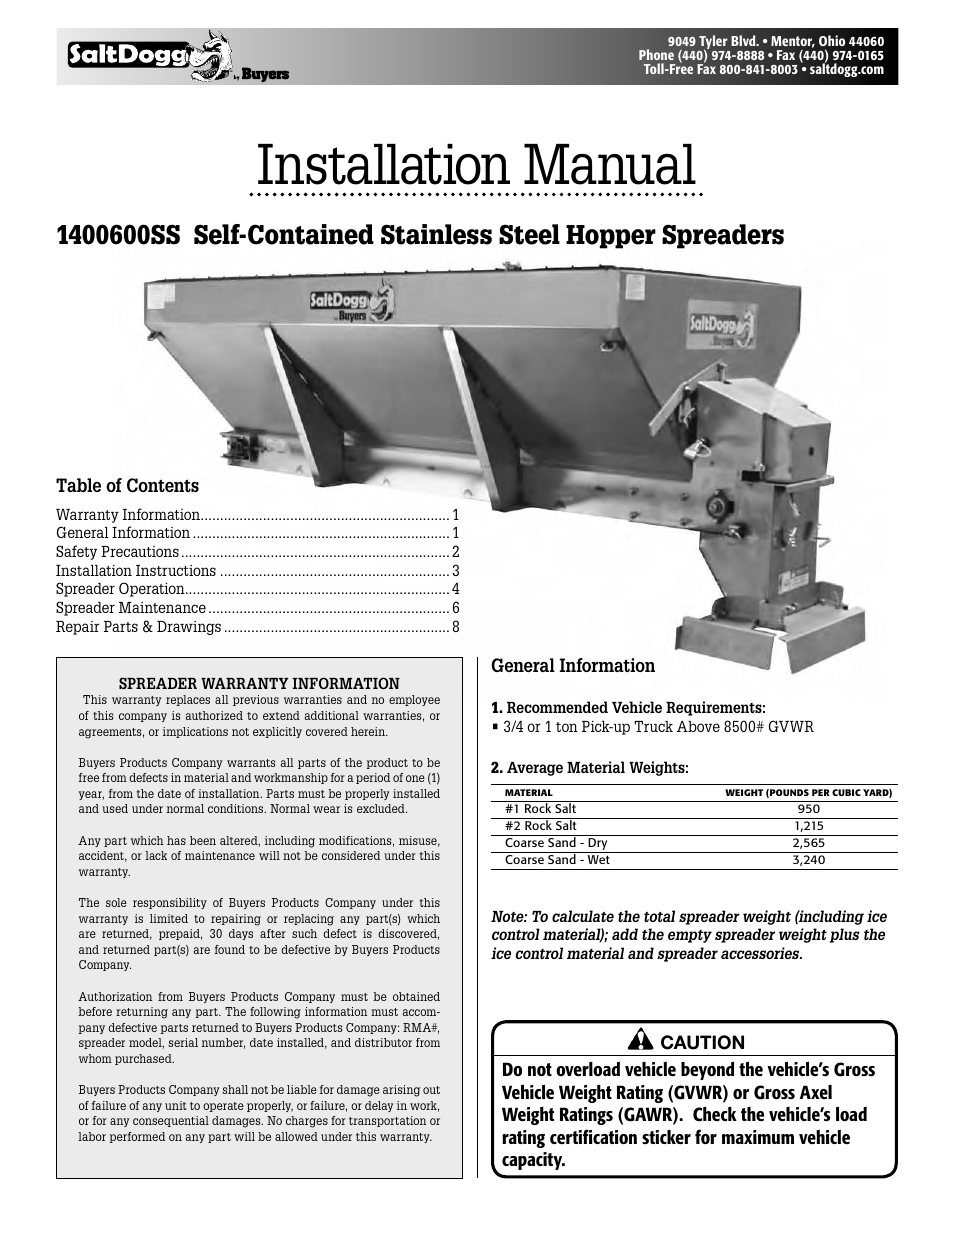 Saltdogg 1400600ss Self Contained Stainless Steel Hopper Spreaders Buyers Salt Spreader Wiring Diagram User Manual 8 Pages